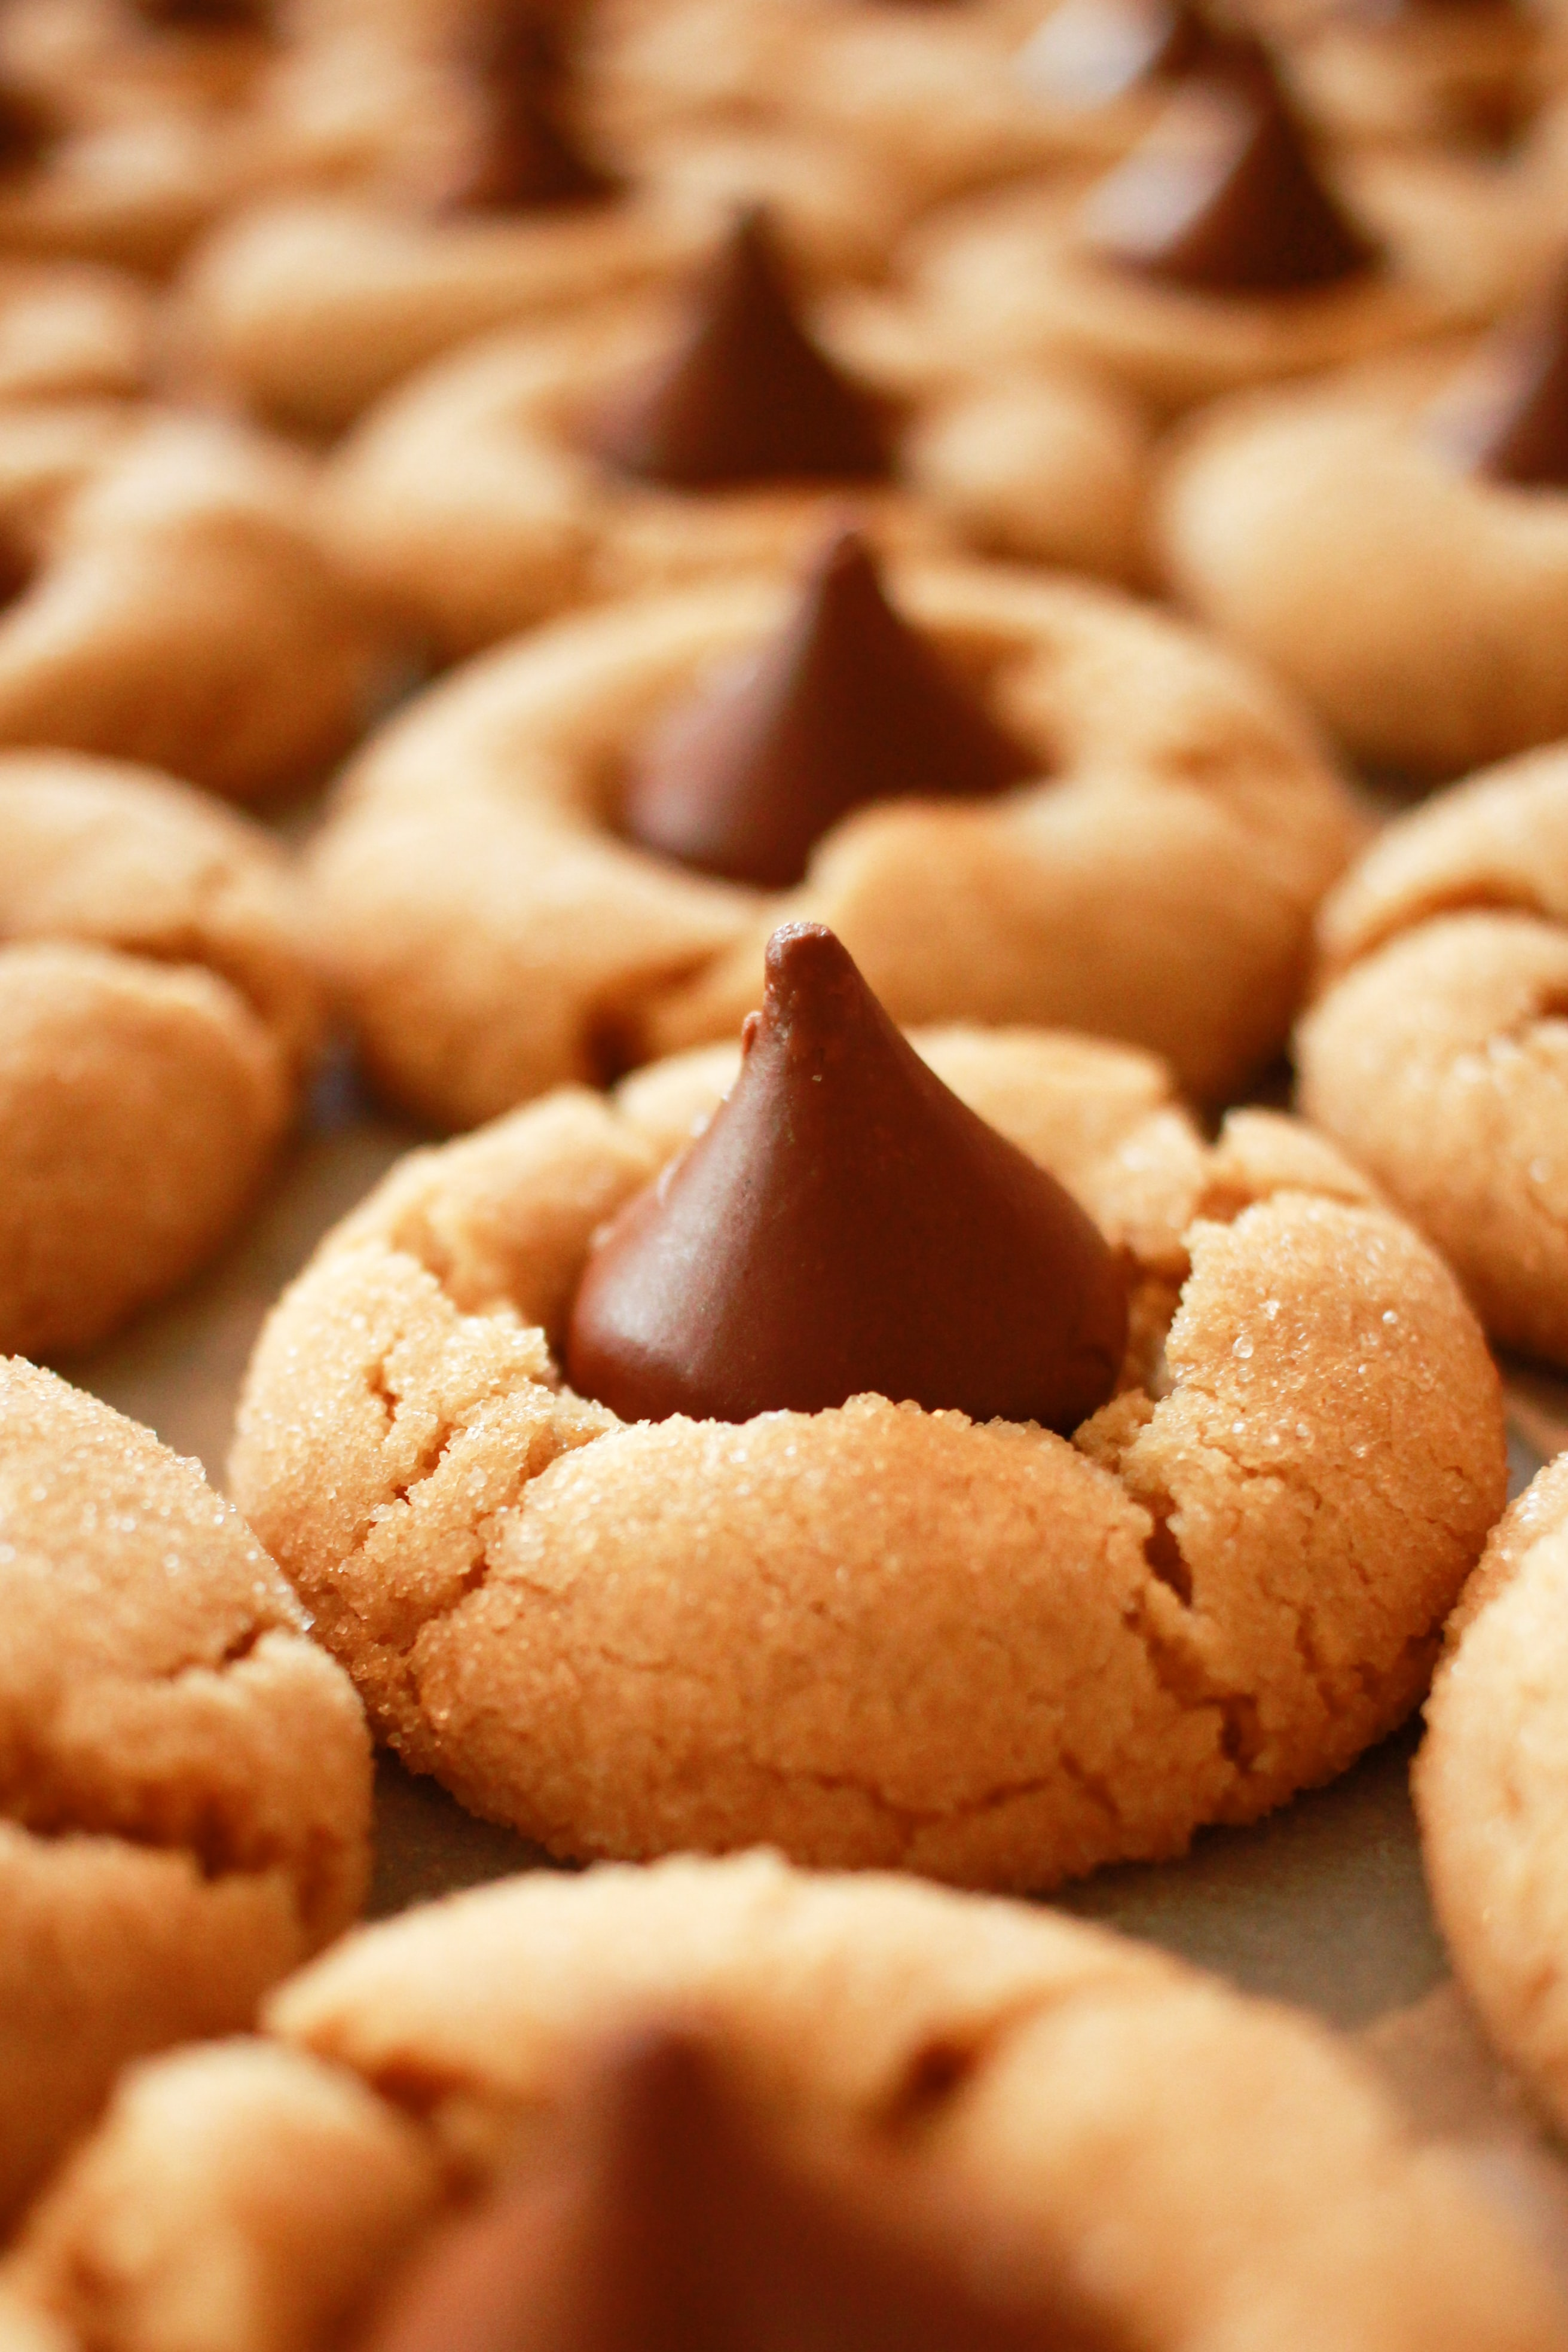 close photography of biscuits with chocolates